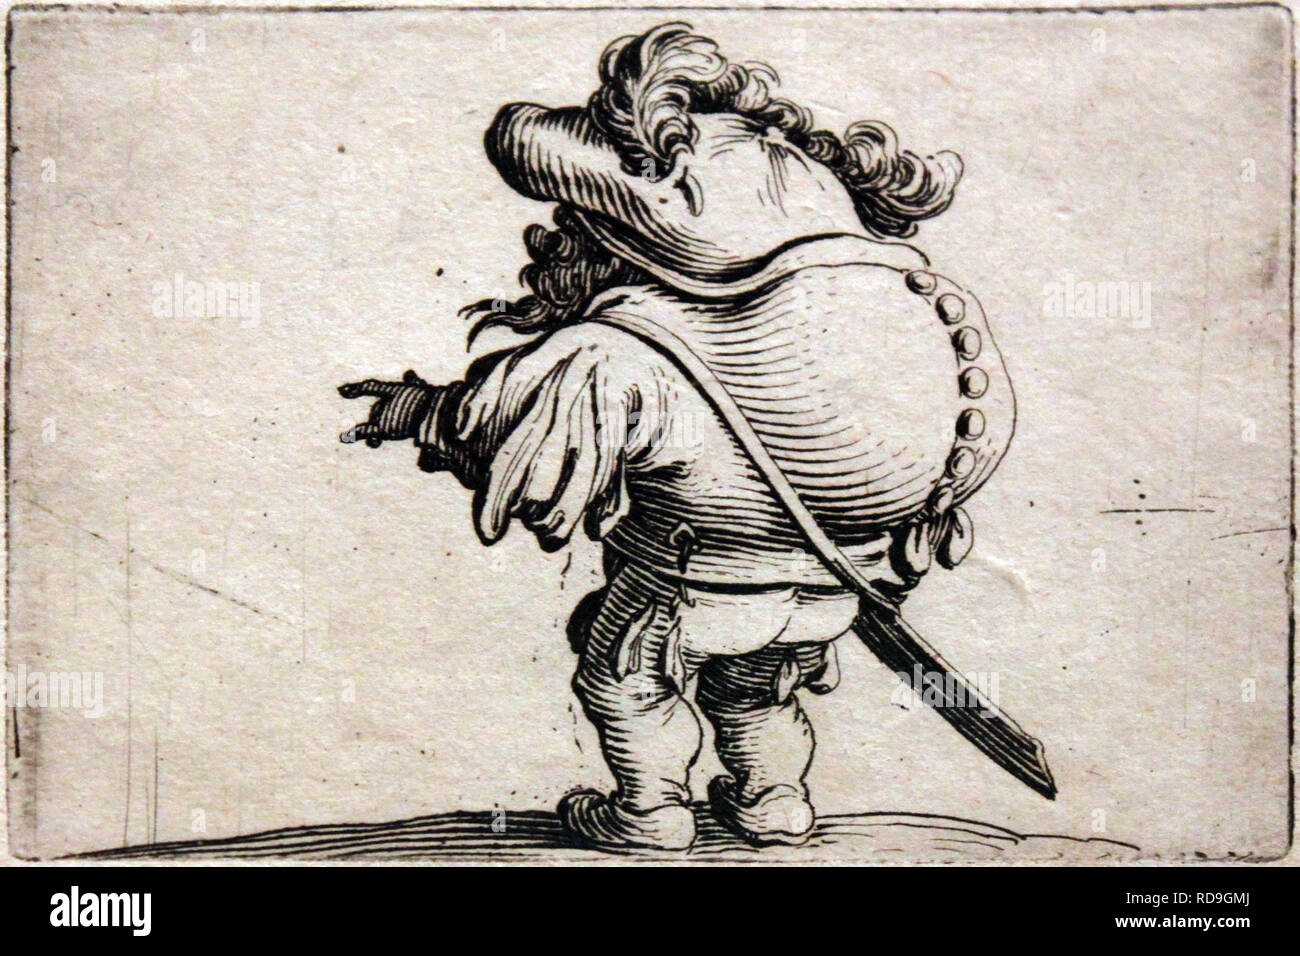 The Hunchbacked Dwarf - Stock Image